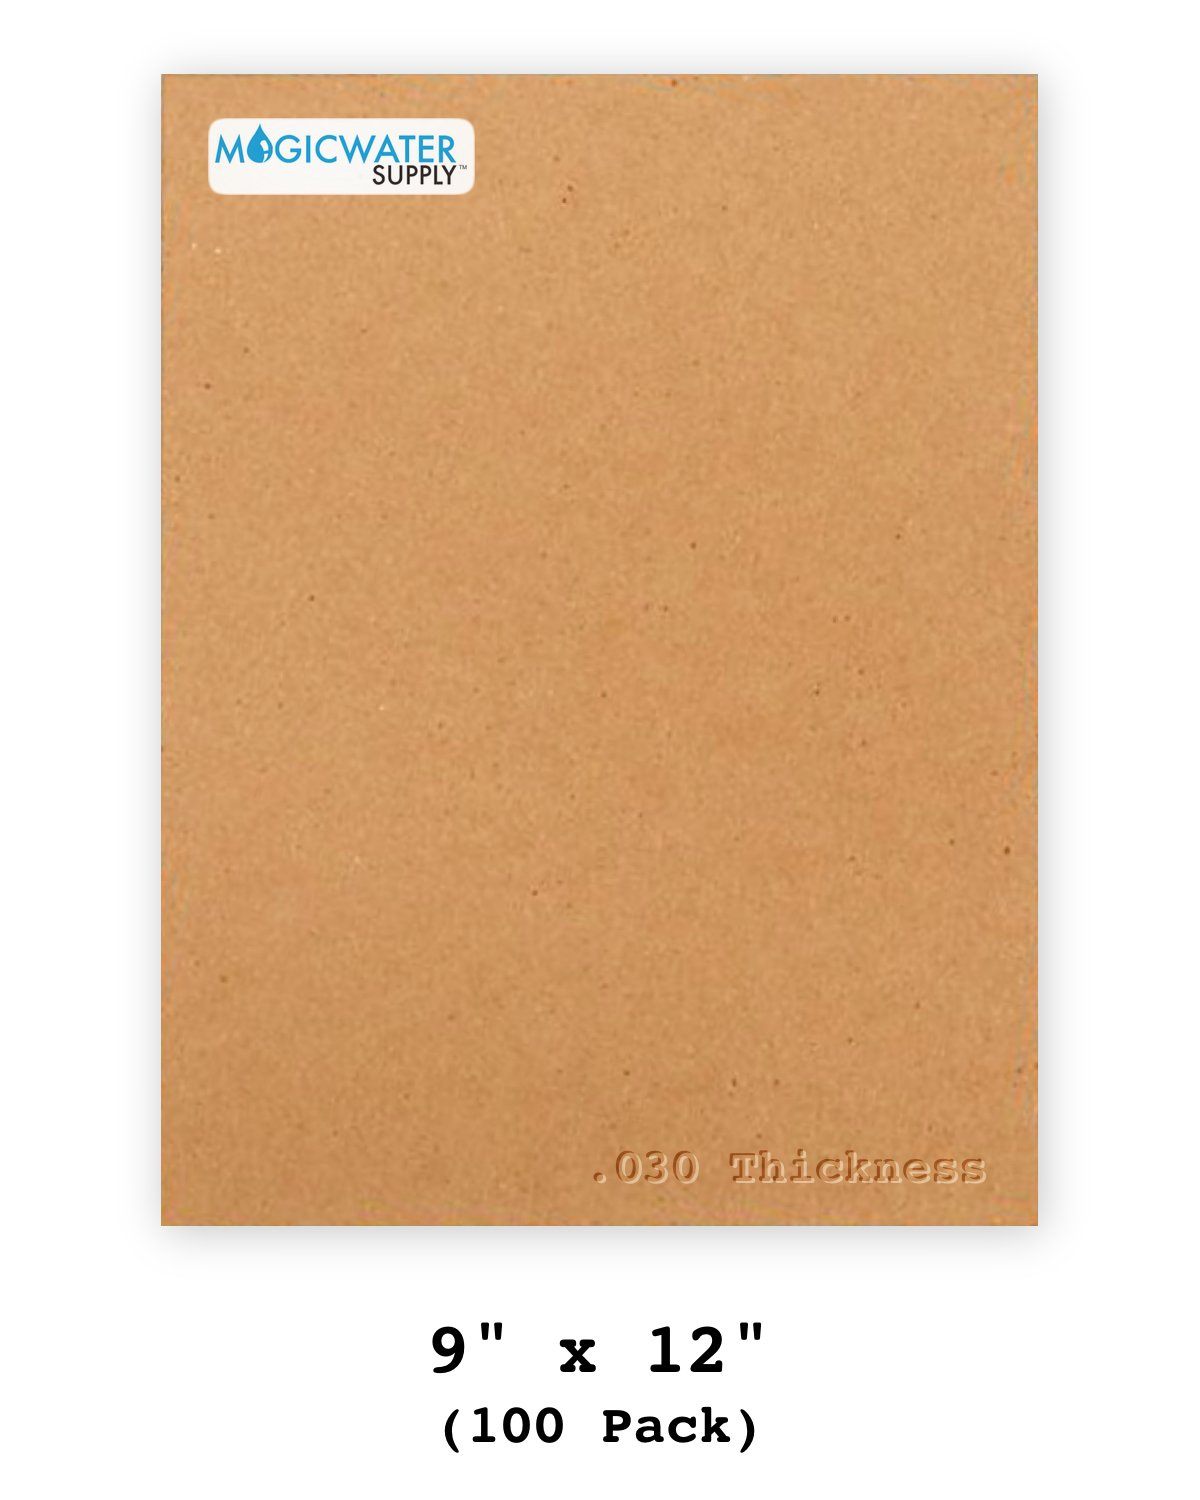 100 Chipboard Sheets 9 x 12 inch - 30pt (Point) Medium Weight Brown Kraft Cardboard for Scrapbooking & Picture Frame Backing (.030 Caliper Thick) Paper Board | MagicWater Supply by MagicWater Supply